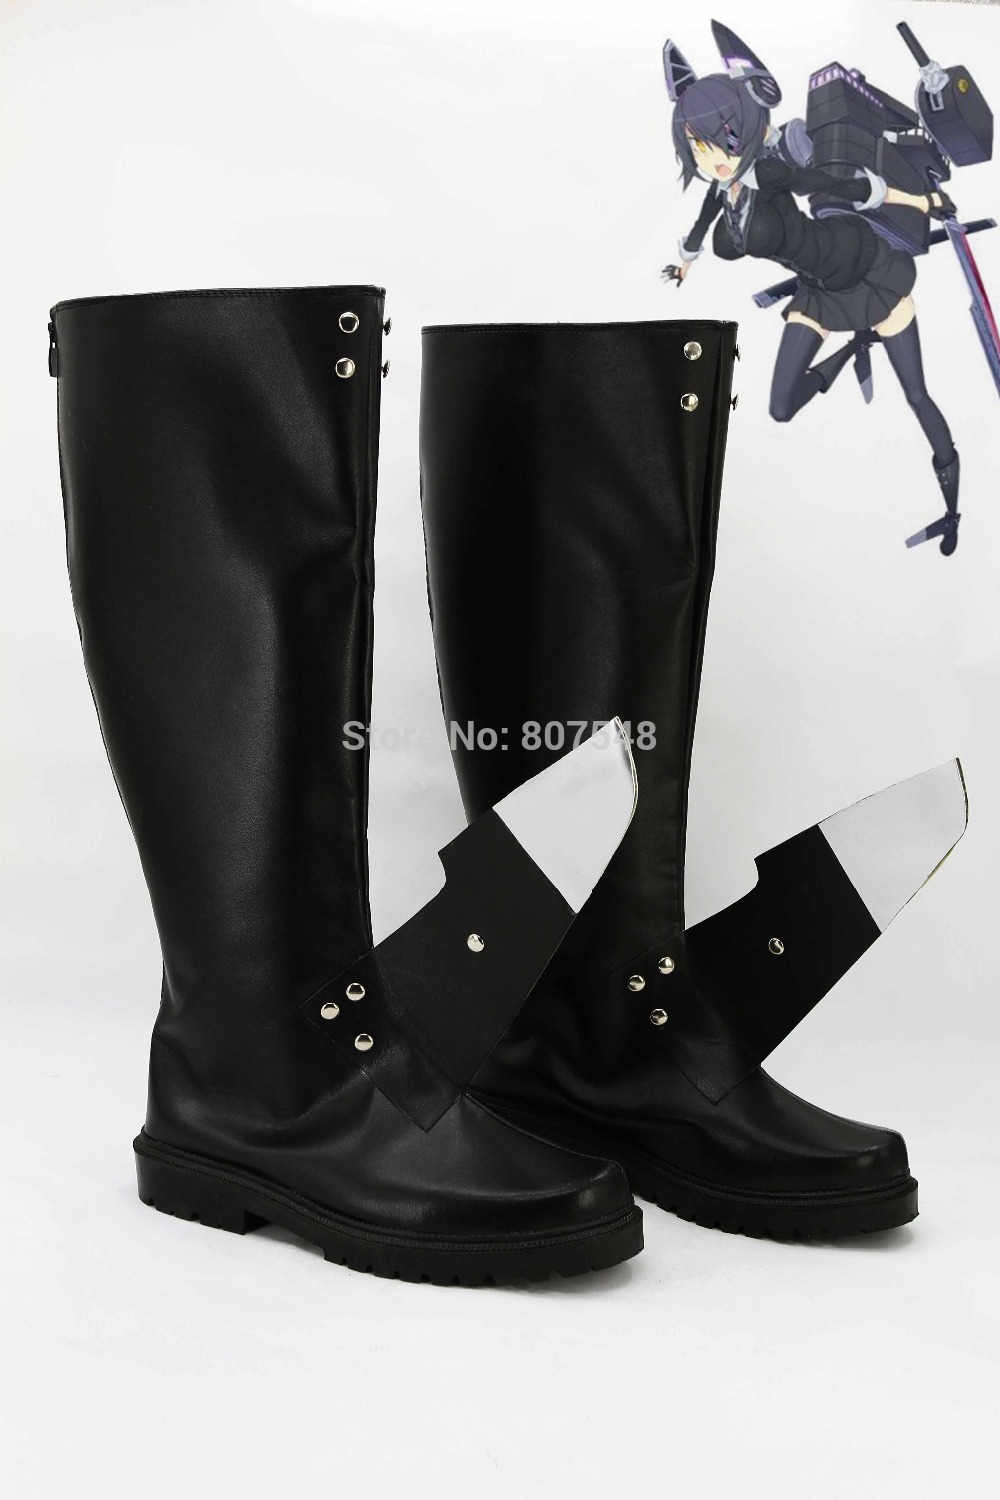 Anime Boy Shoes : anime, shoes, Anime, Collection, Tenryu, Cosplay, Boots, Shoes, Custom, Knee-high, Shipping, Fashion, Model